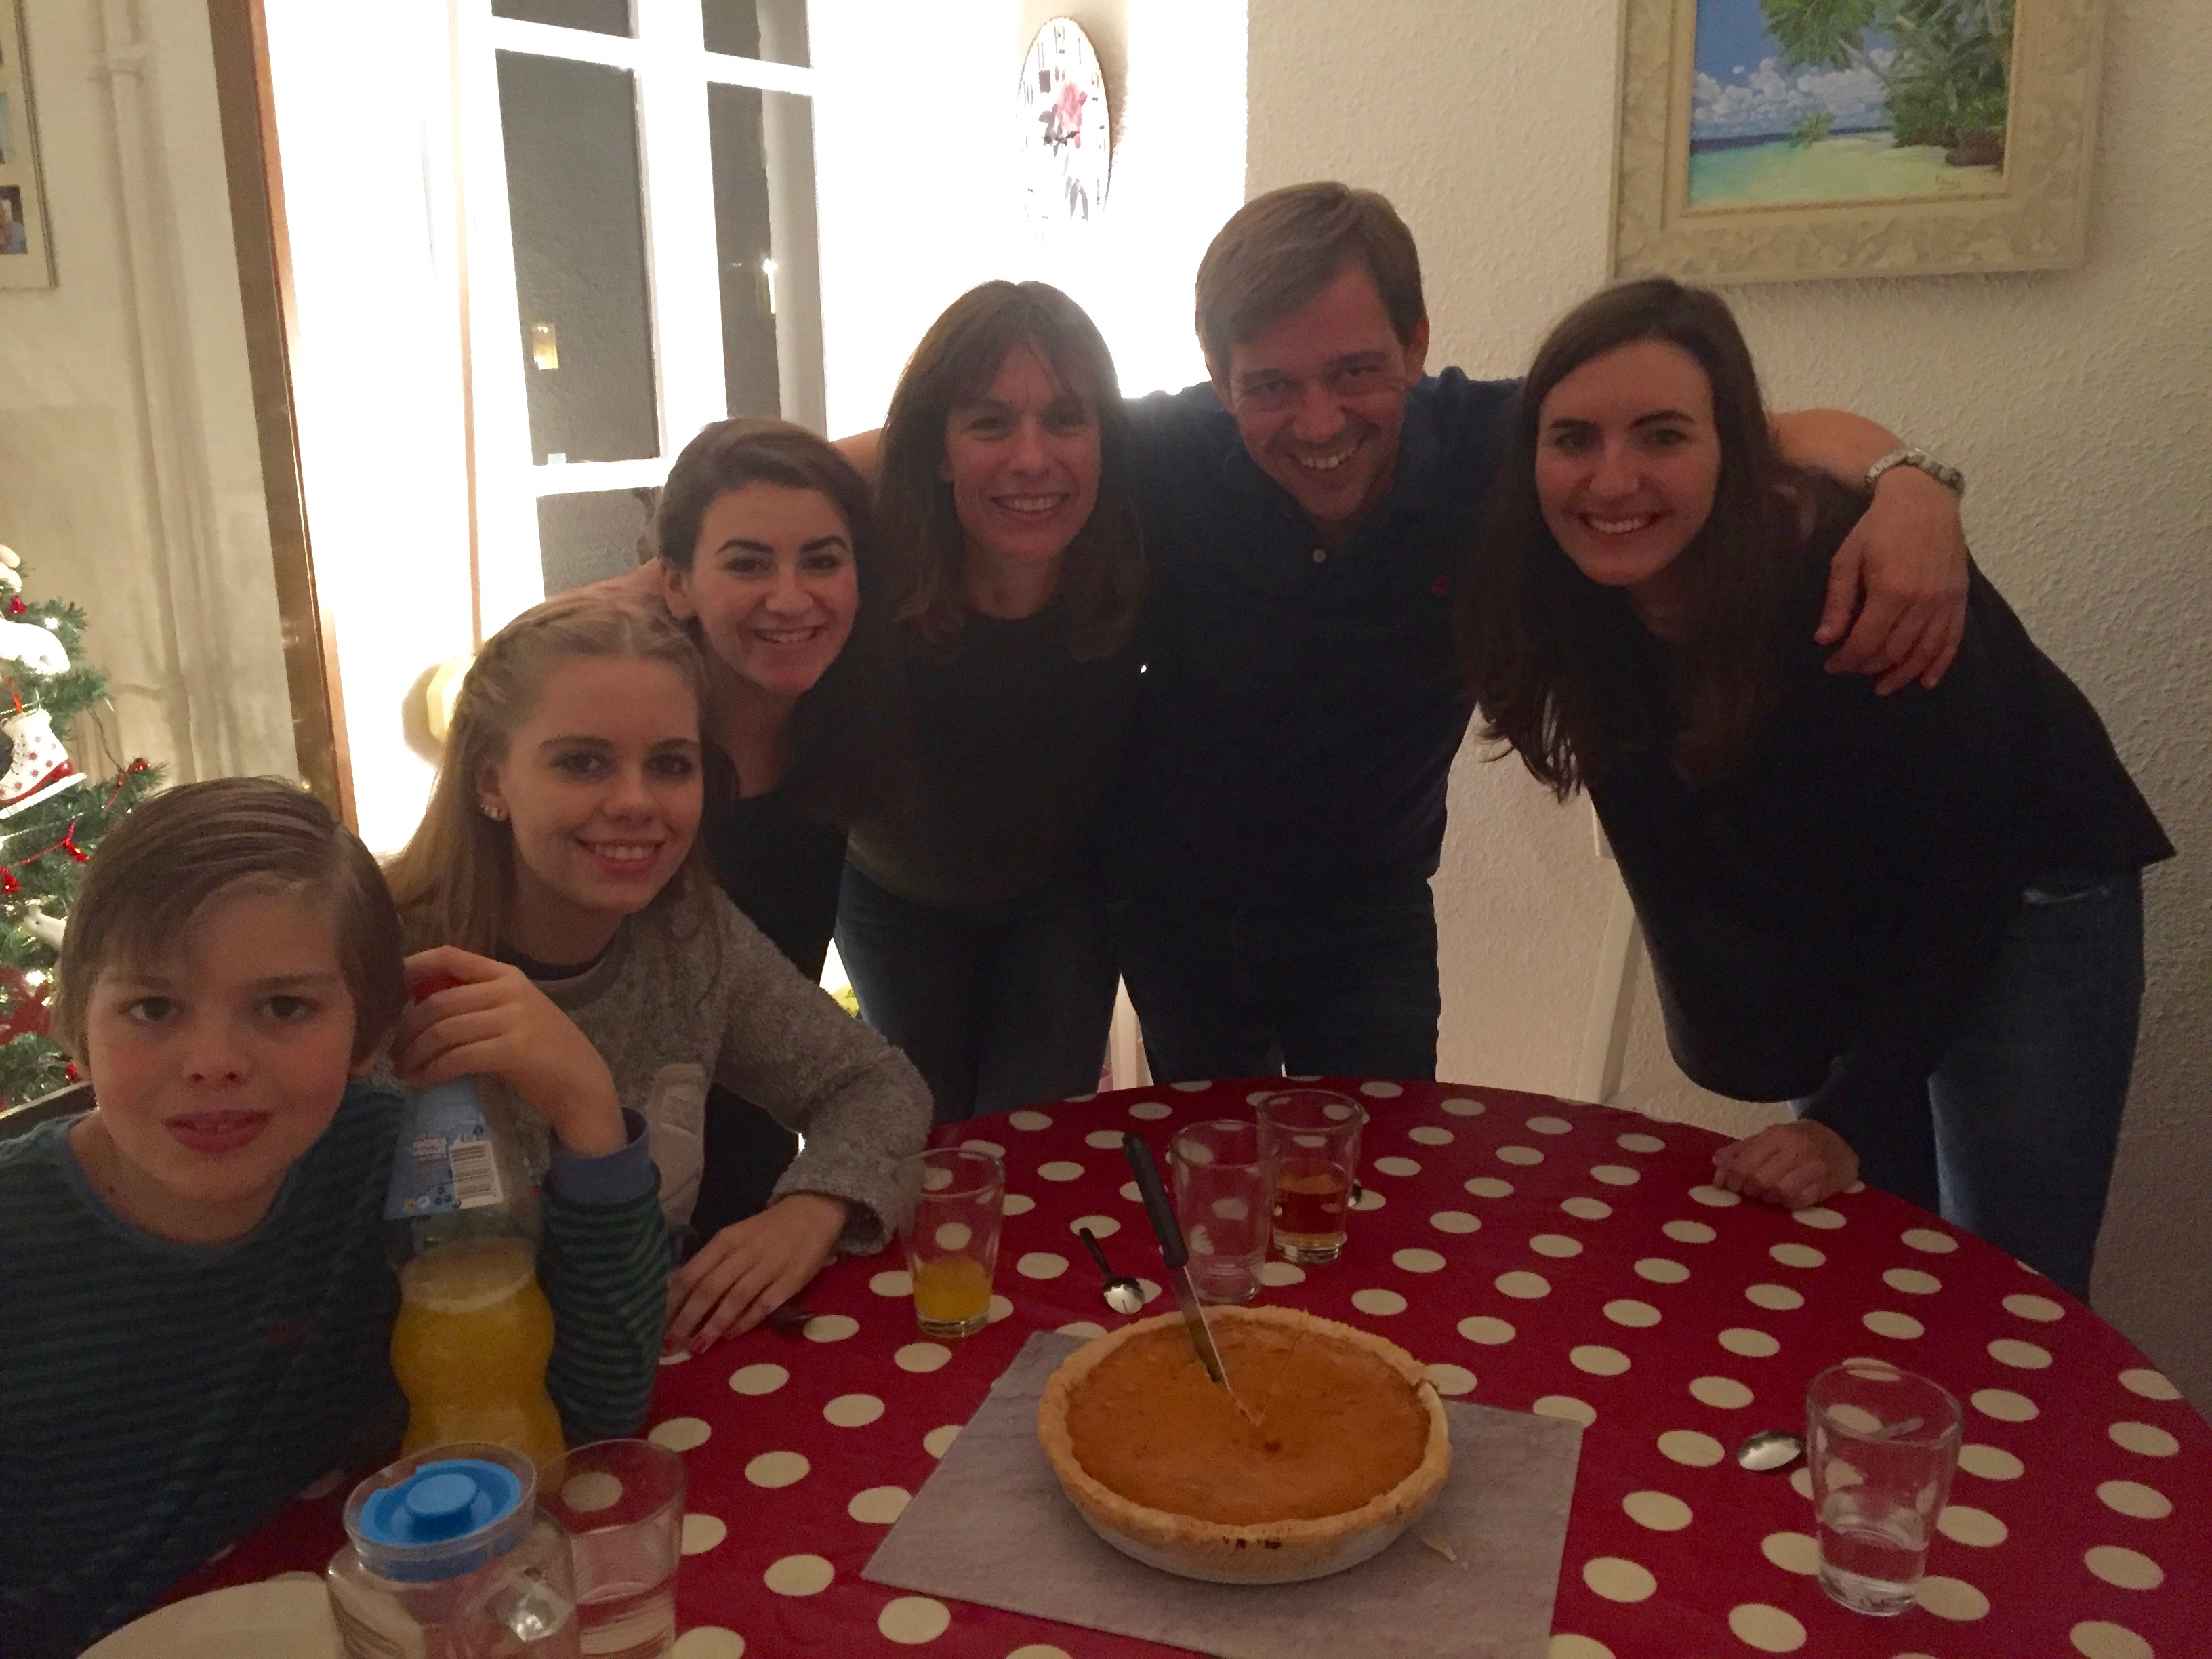 Katherine with her host family and roommate, on their last night in Madrid when they baked a traditional, American pumpkin pie for dessert.